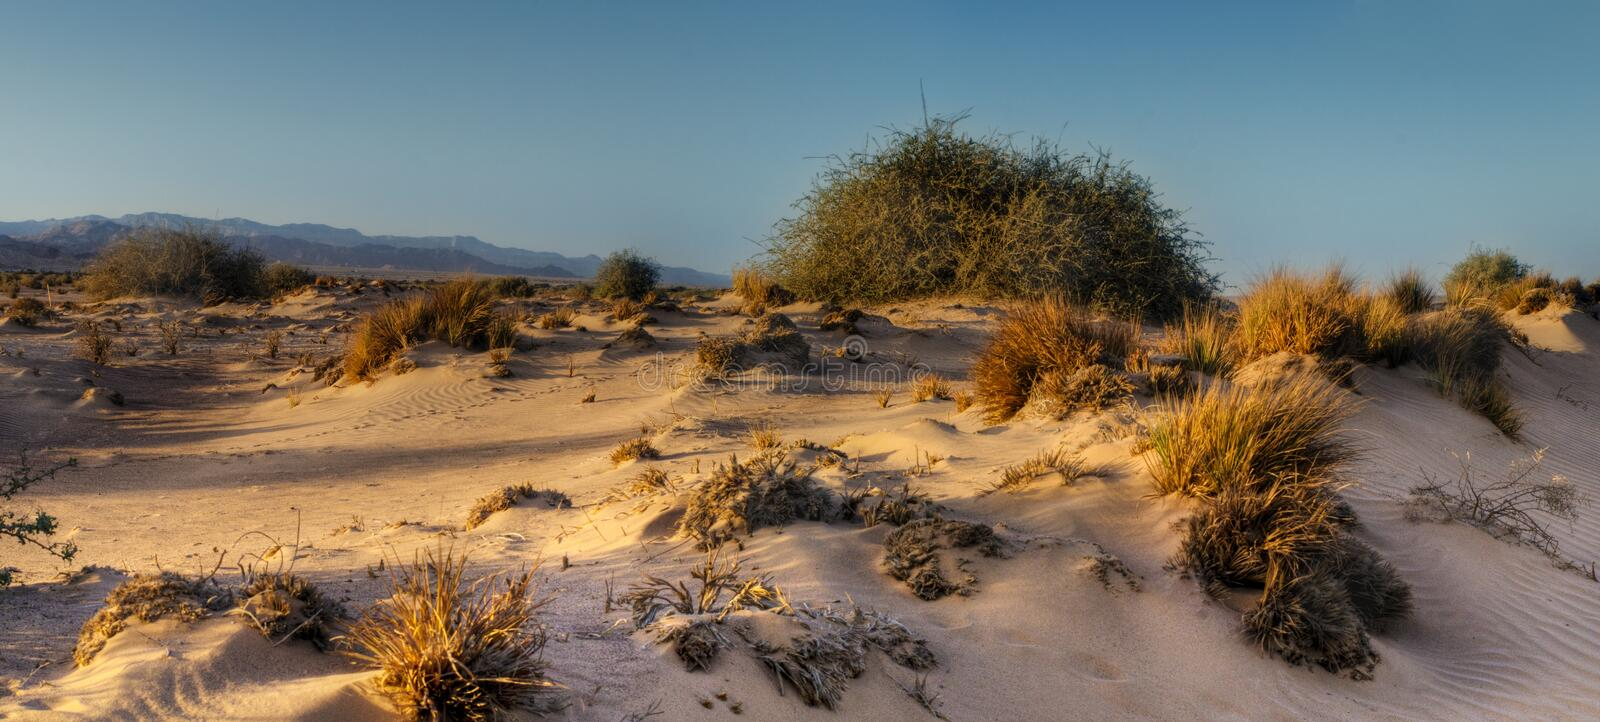 View on barchan sands in Arava valley, Israel stock photos